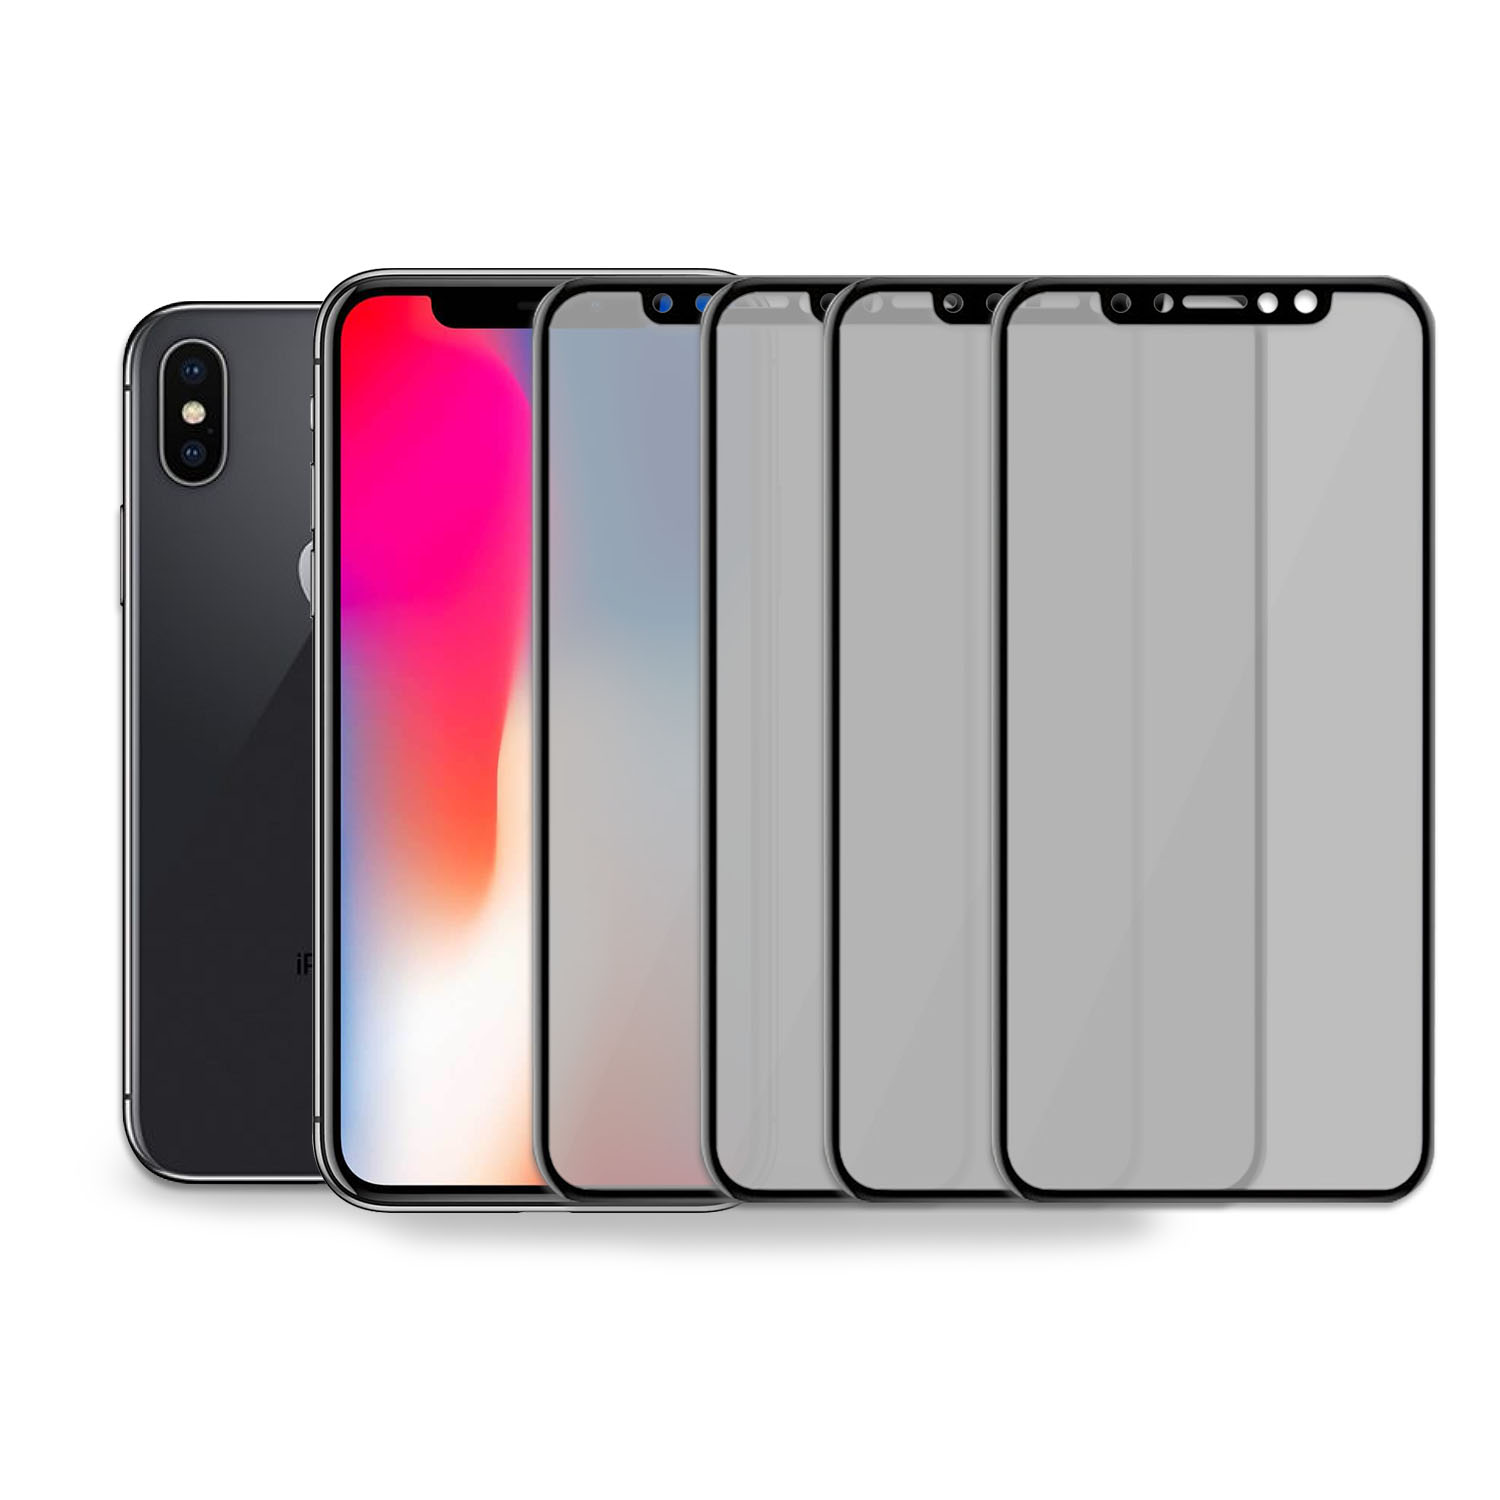 4PK- Reliable and Long Lasting Privacy Screen Protector for Apple iPhone X by SkylerShield, Scratch Proof Anti Spy 3D Full Cover Tempered Glass Screen Protector for Apple iPhone X, iPhone 10